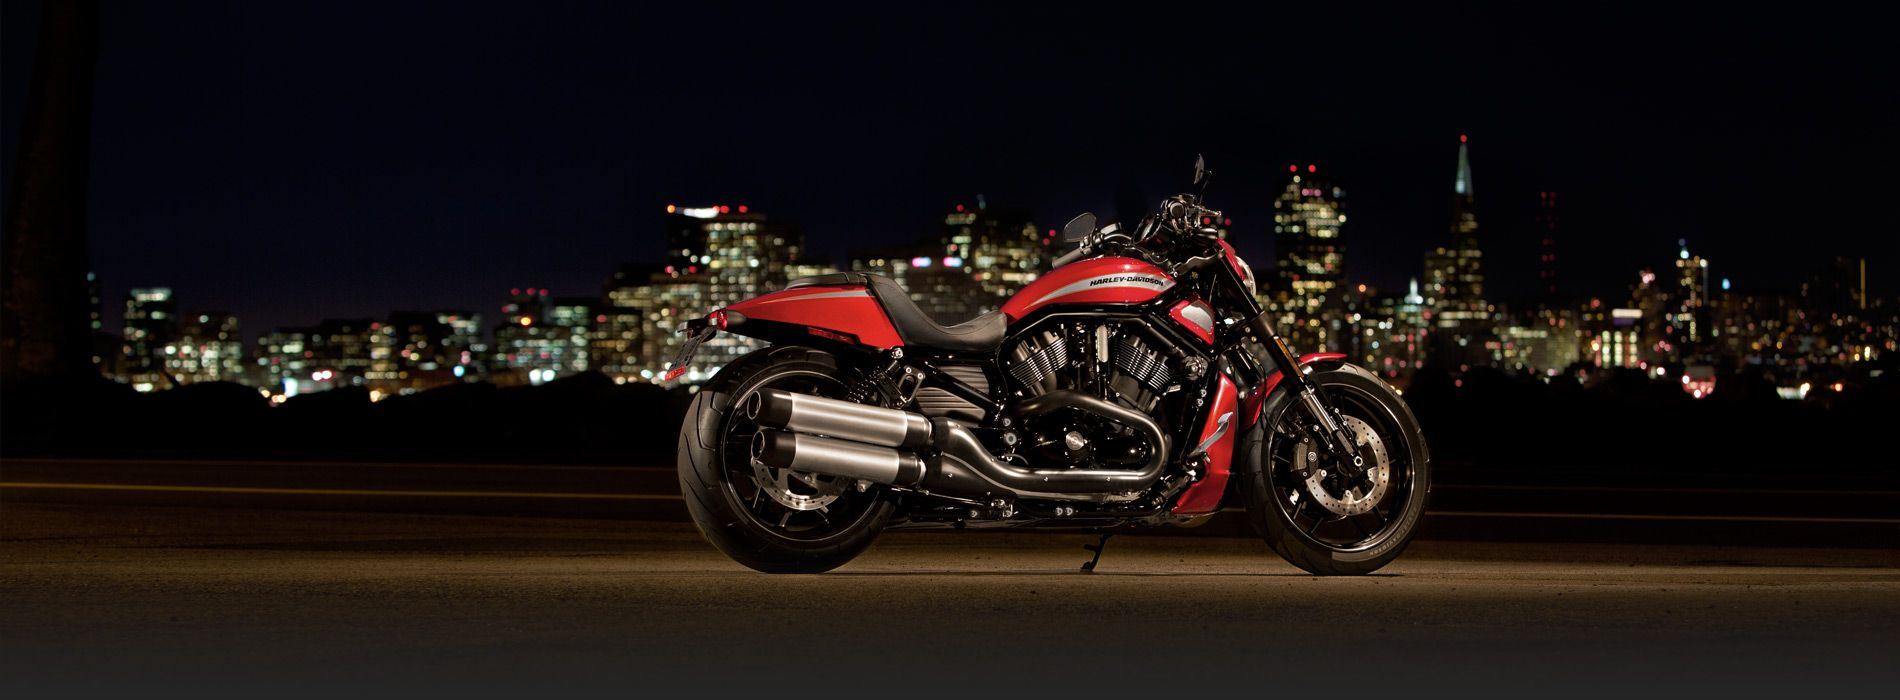 V-Rod Night Rod® Special | Power Cruiser #harleynightrod  #harleyxchange #harleydirtcheap